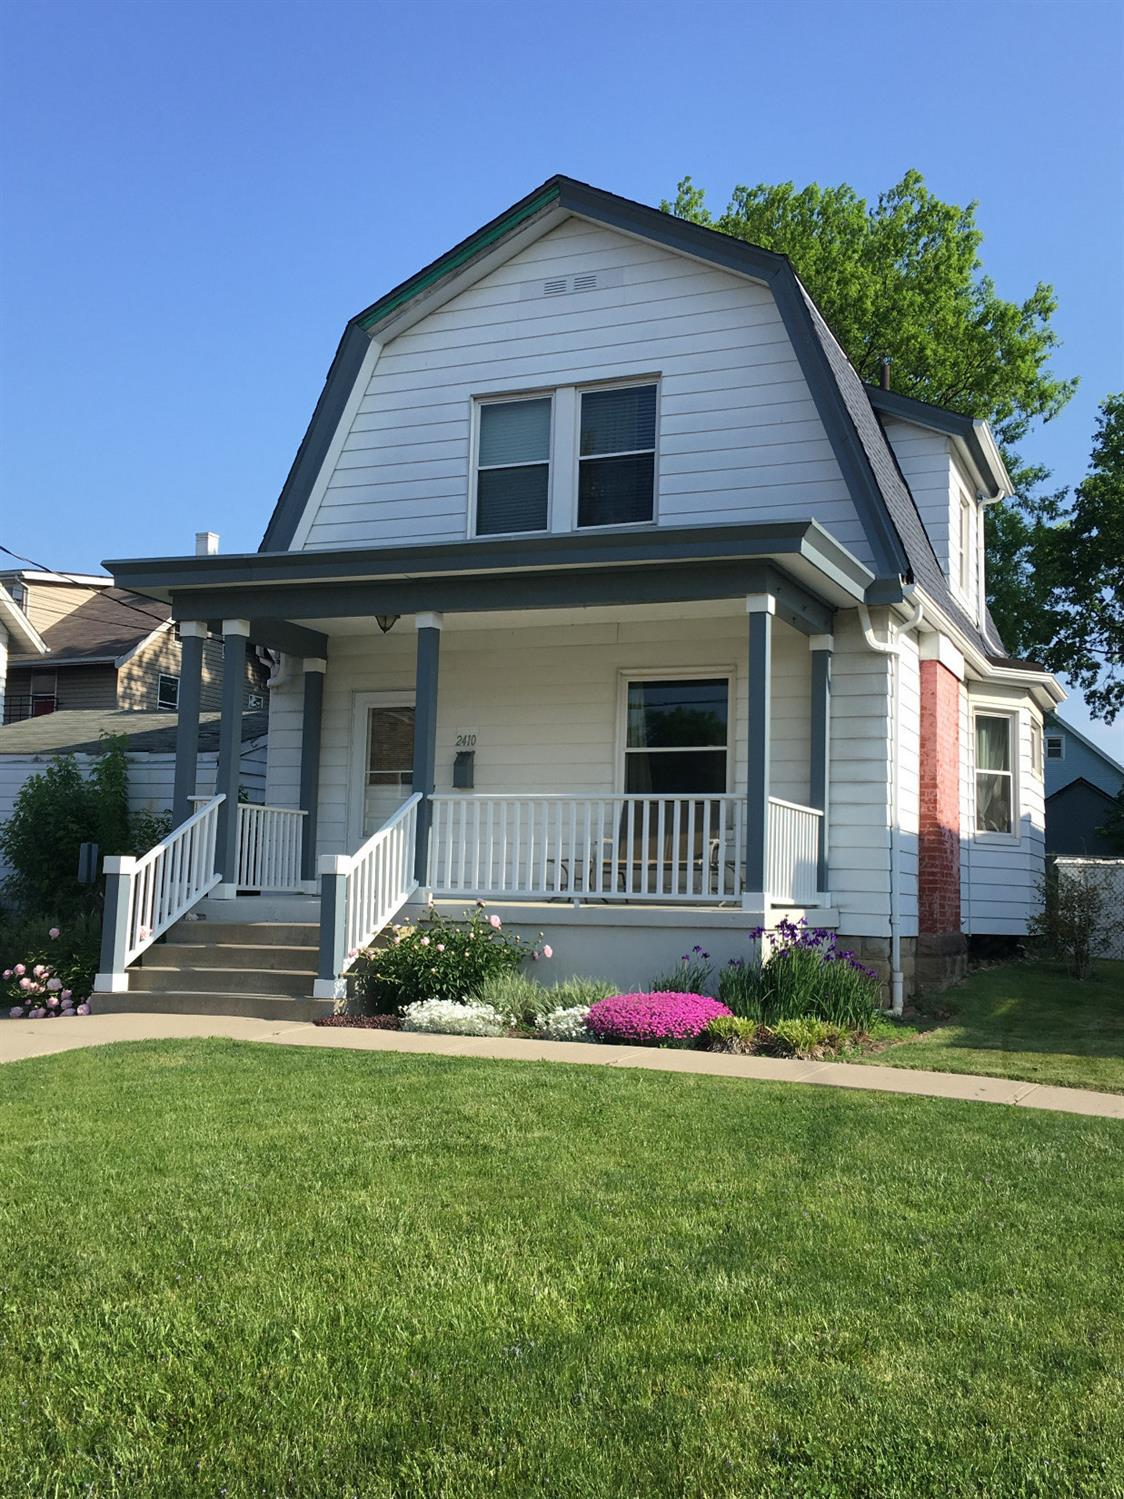 2410 Robertson Ave Norwood, OH